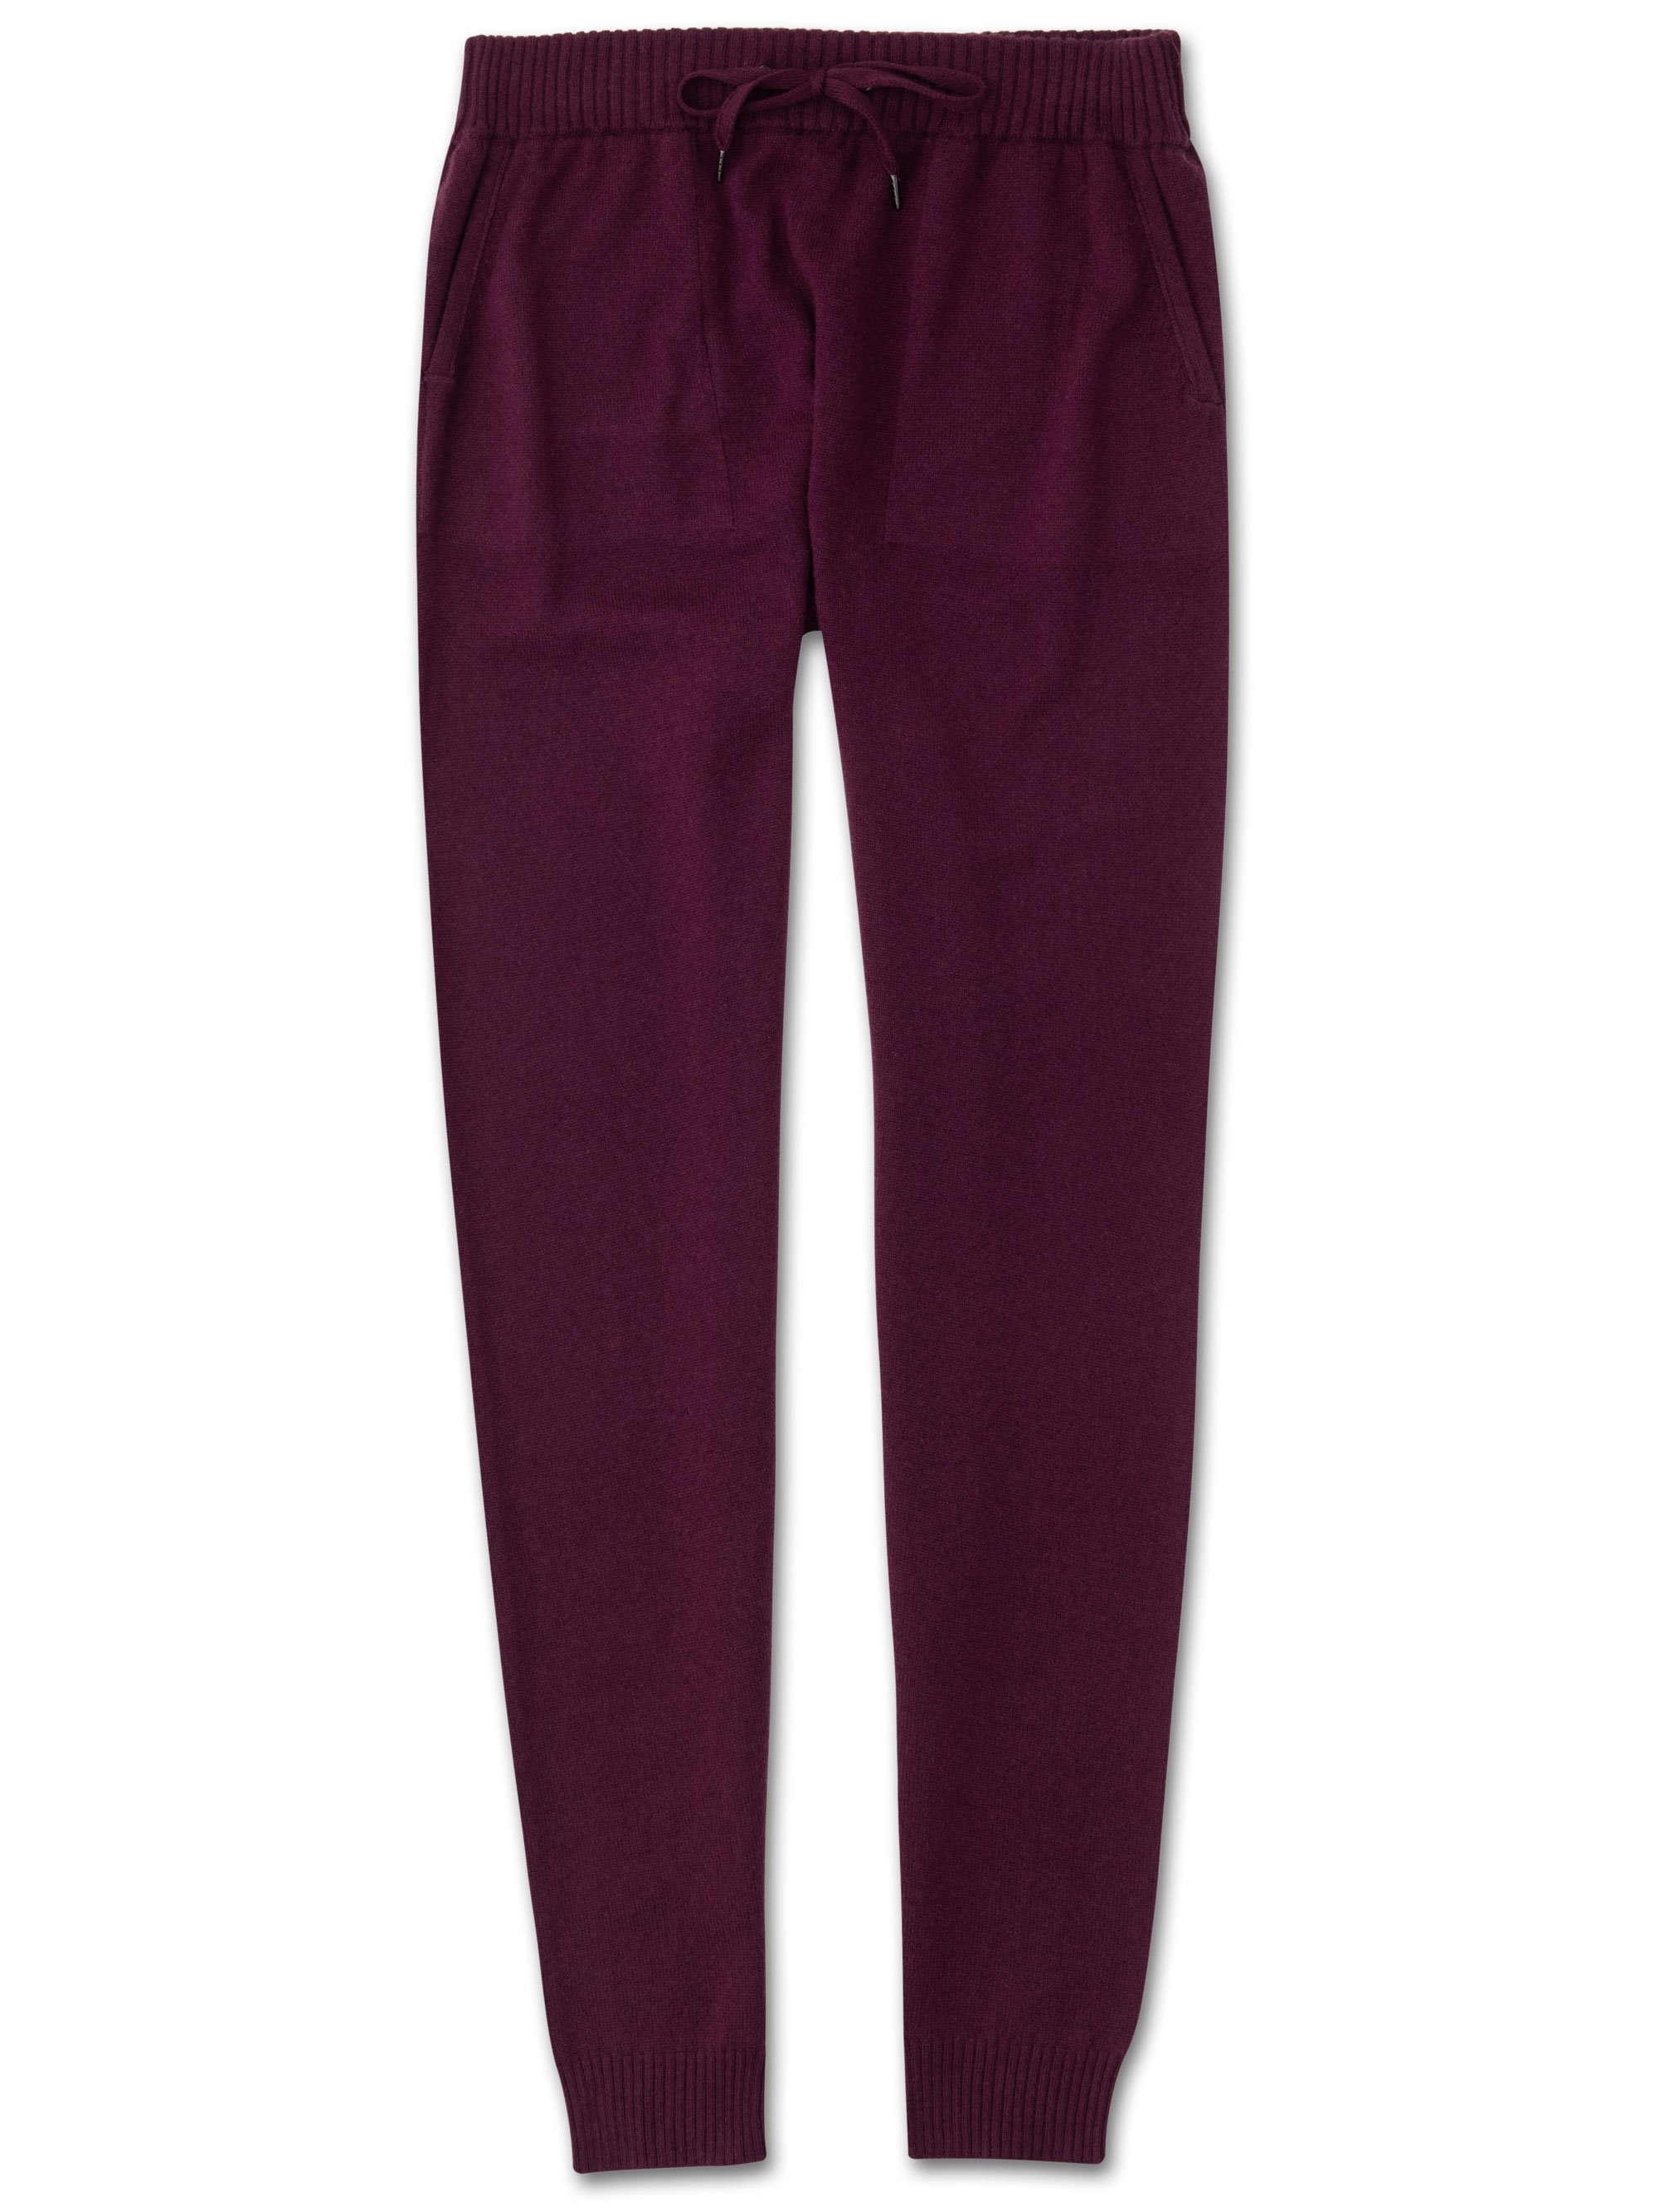 Women's Cashmere Track Pants Finley Pure Cashmere Berry